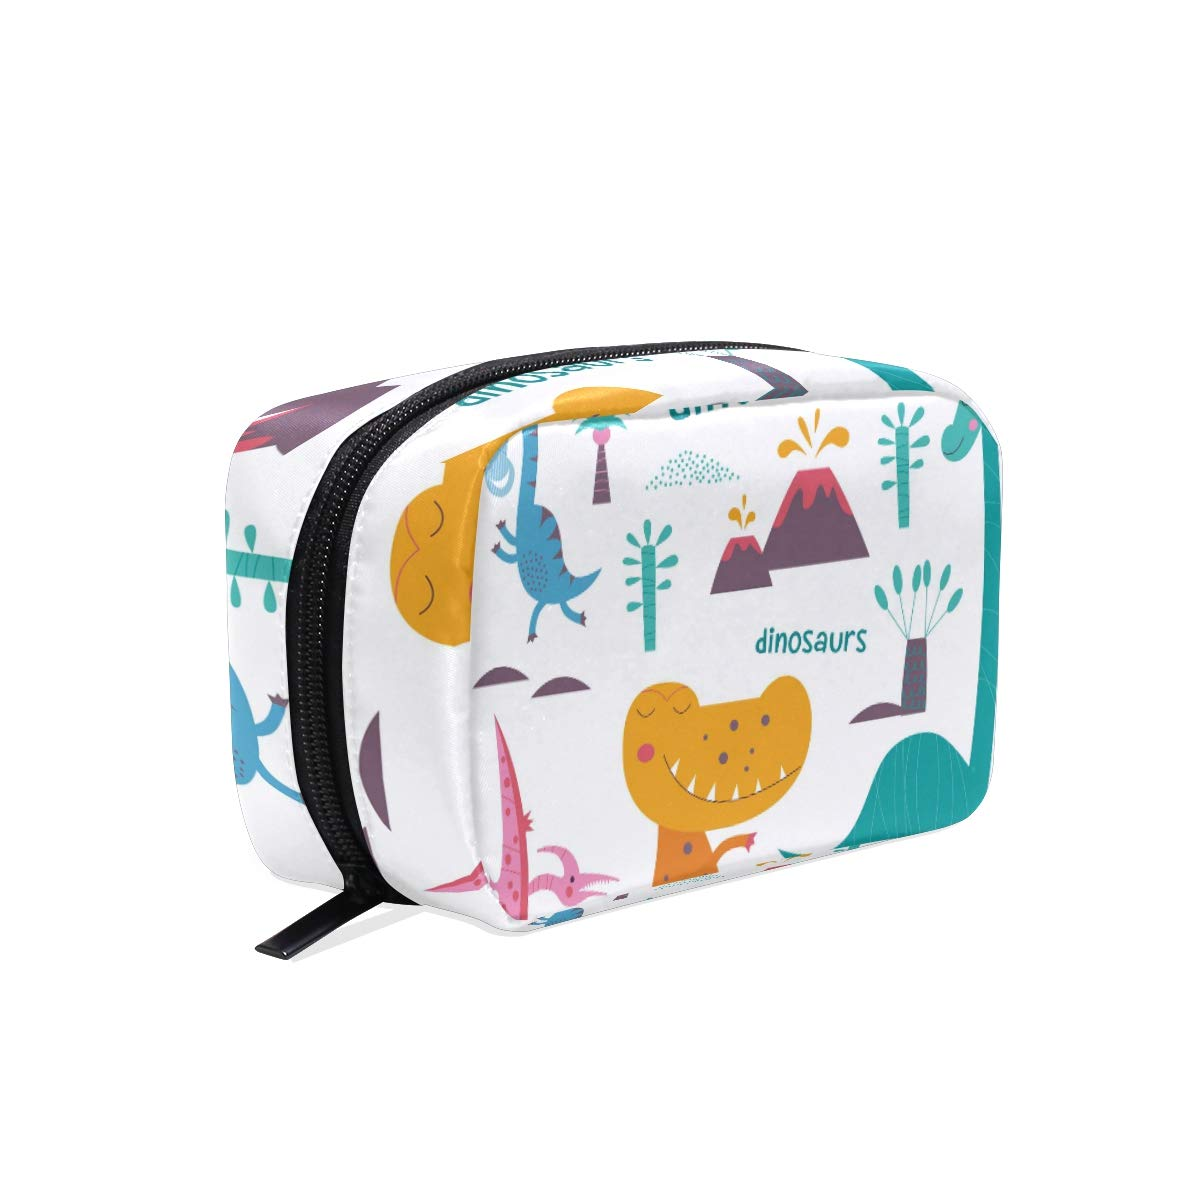 Women's Makeup Cosmetic Bag Cute Dinosaur Makeup Pouch for Travel Cosmetic Pouch Purse(904h11)